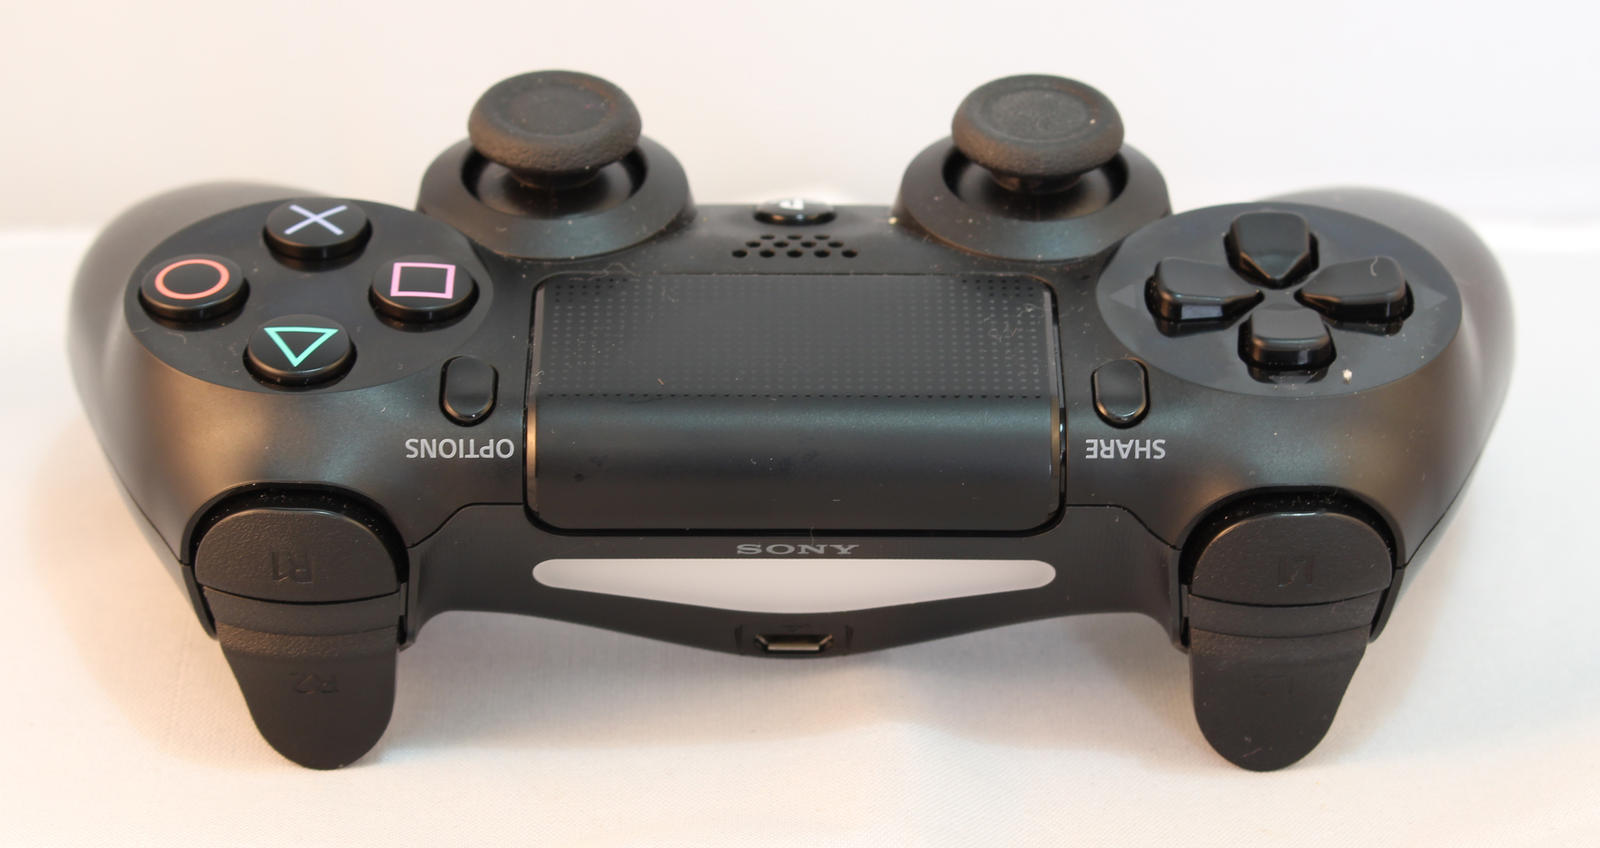 how to watch things on ps4 using usb